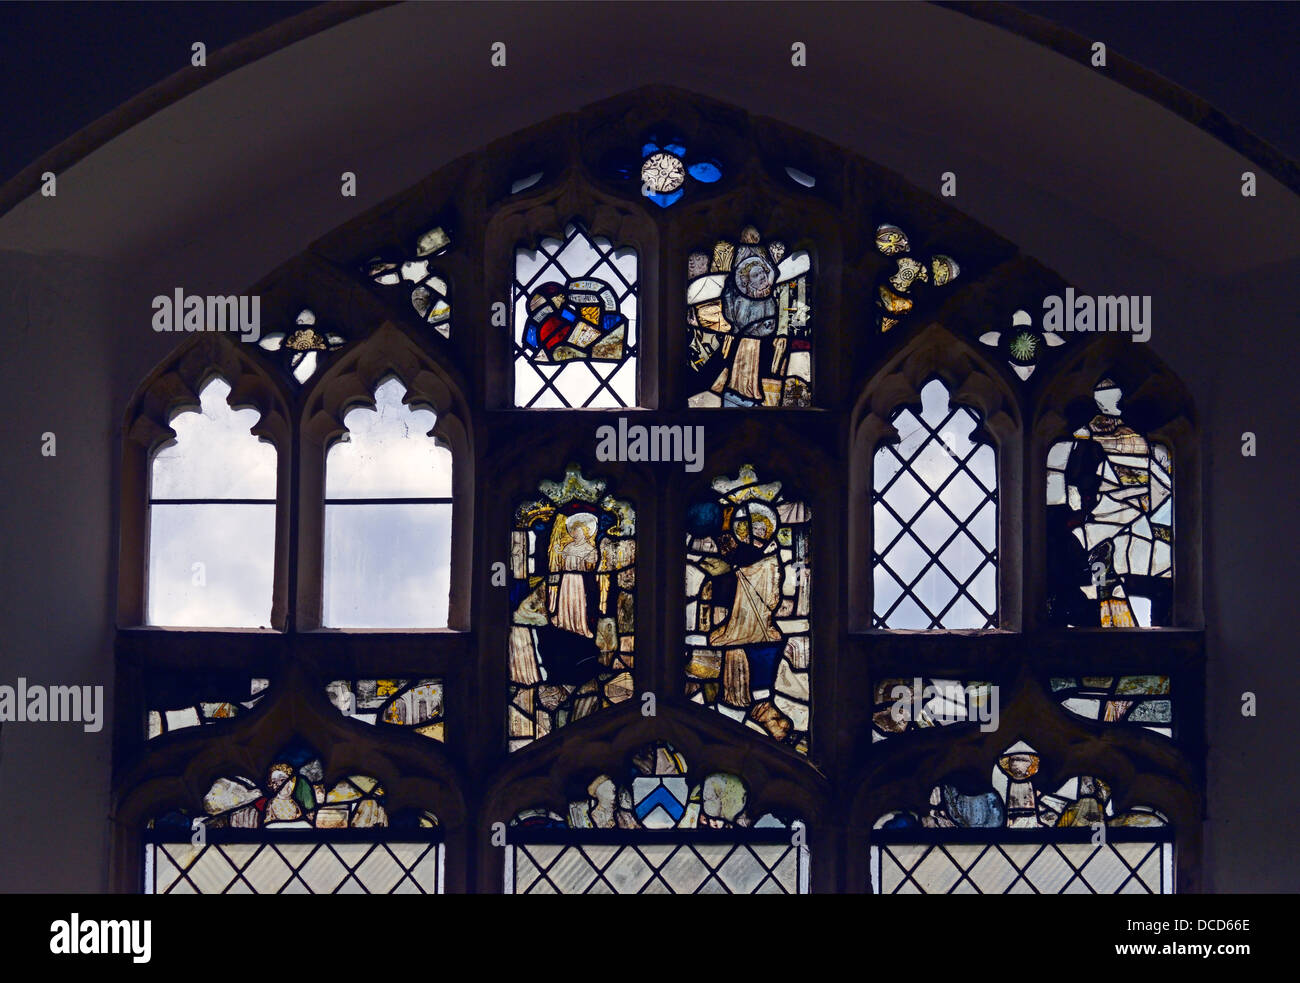 Medieval stained glass fragments. Church of the Holy Trinty. Blythburgh, Suffolk, England, United Kingdom, Europe. - Stock Image